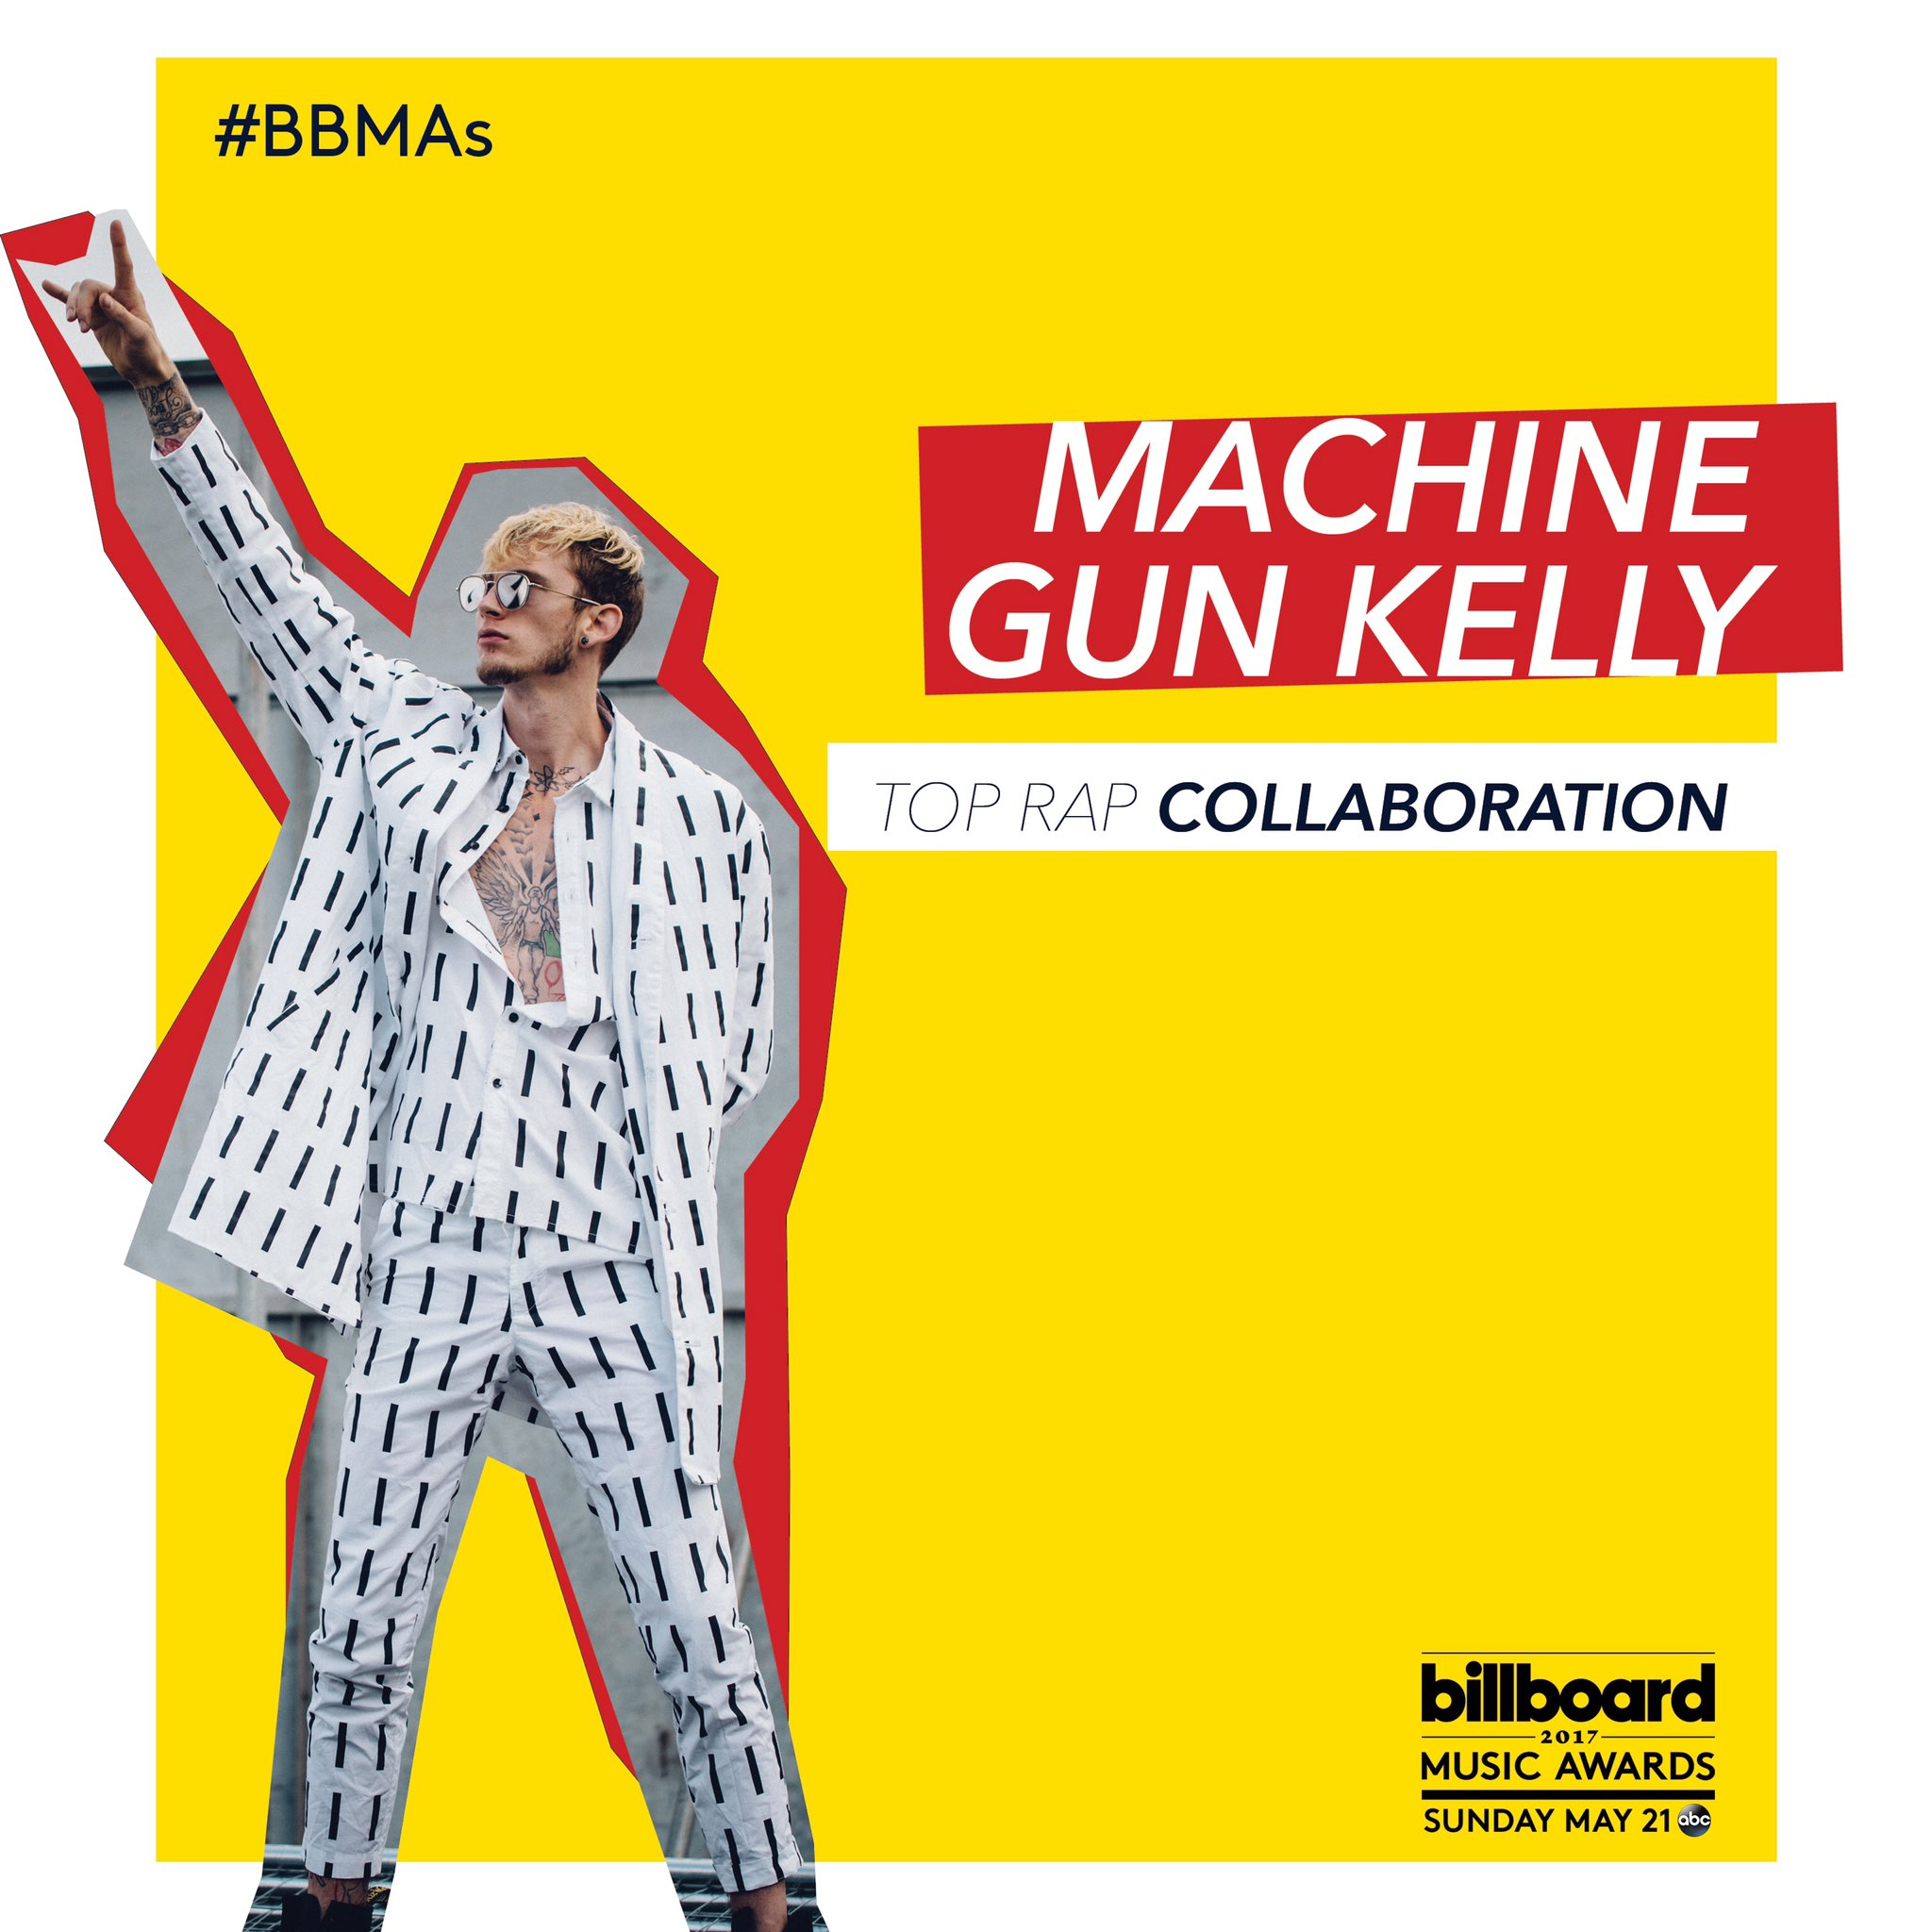 we got a nomination!?!? oh it's on. ������ @billboard https://t.co/D6rBHs3iys